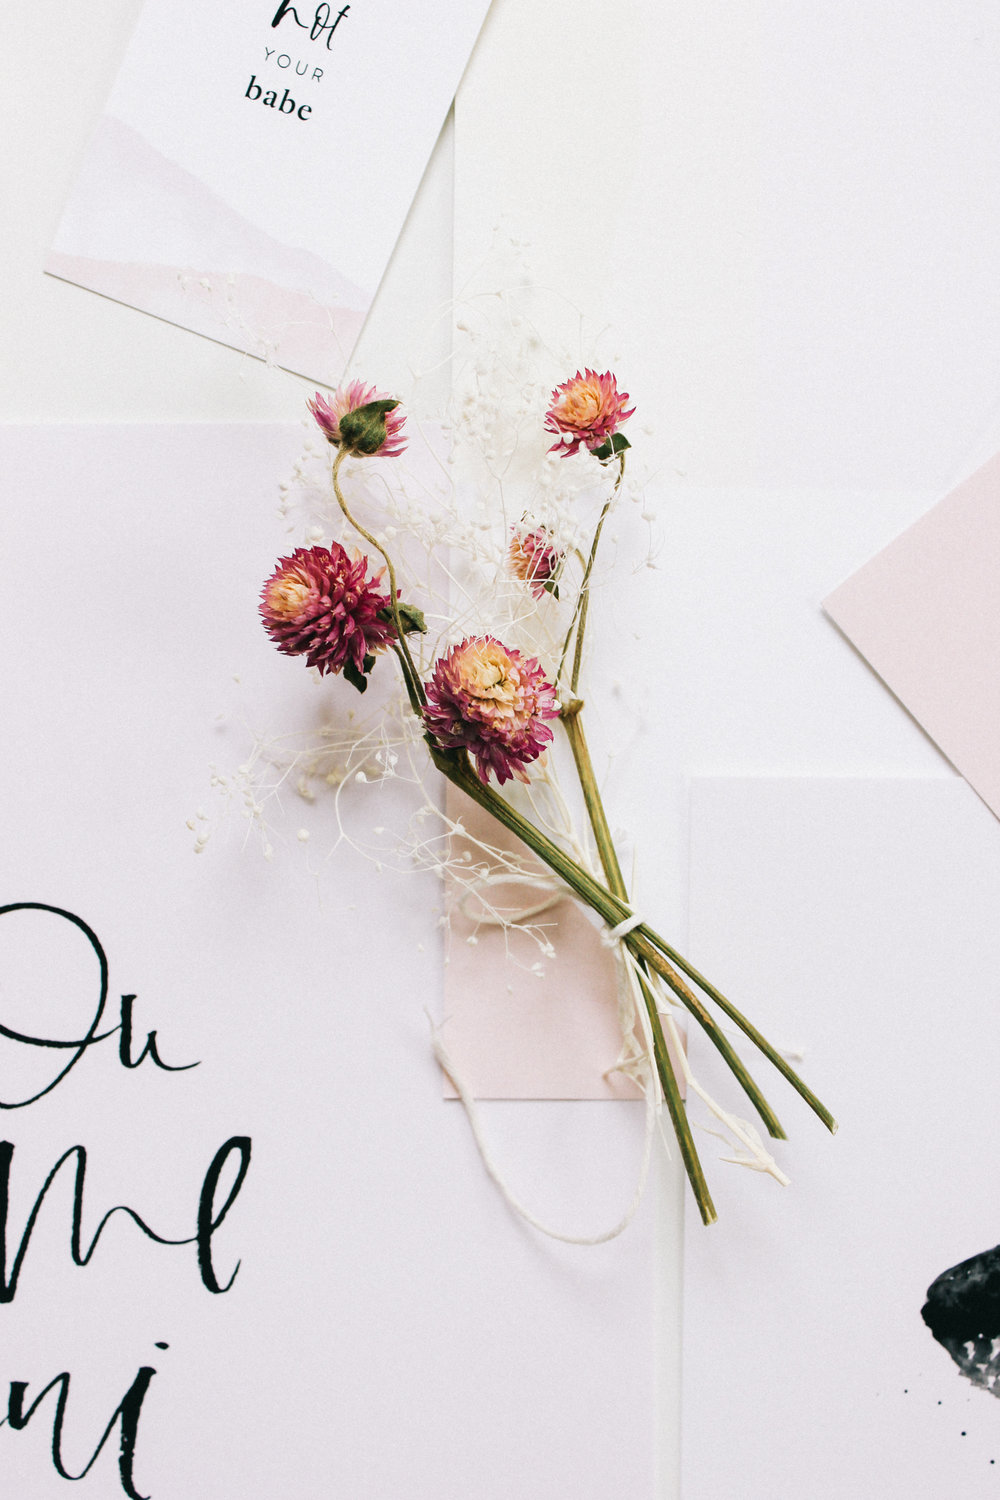 Wilde House Paper Stationery Subscription Box | Mini bunch of dried flowers